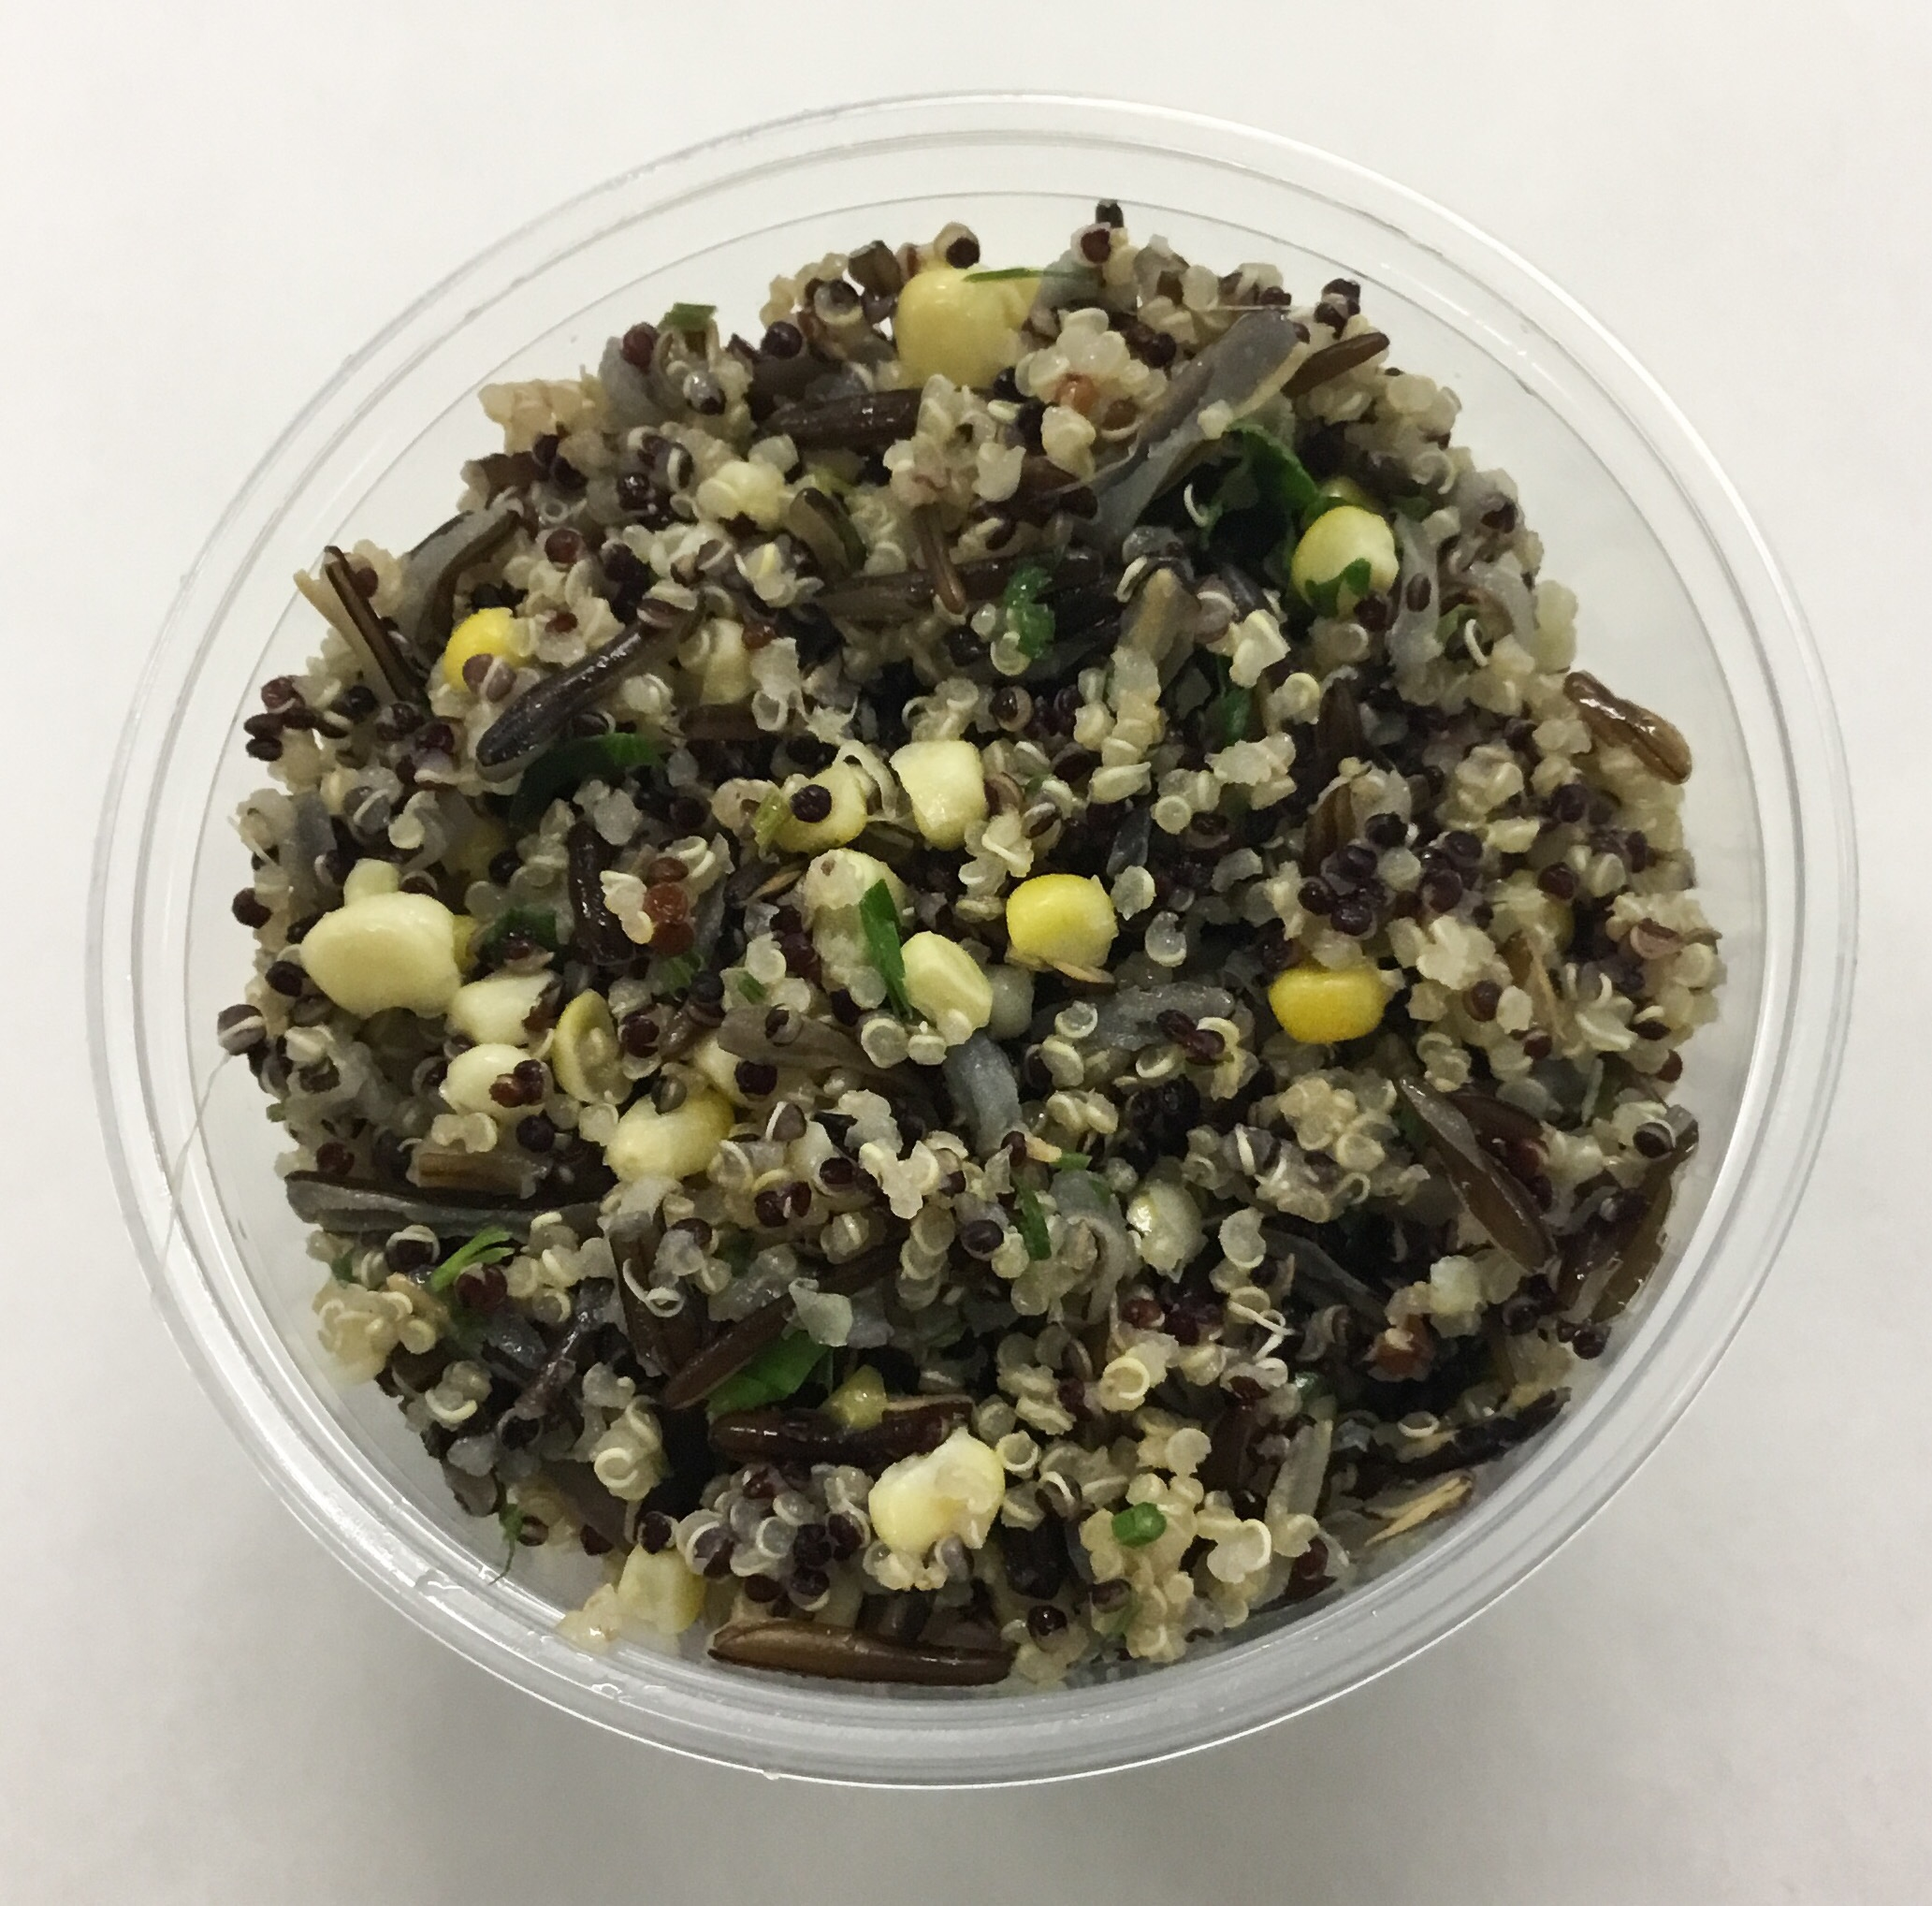 Quinoa and wild rice with corn, brown rice vinegar, olive oil and parsley.